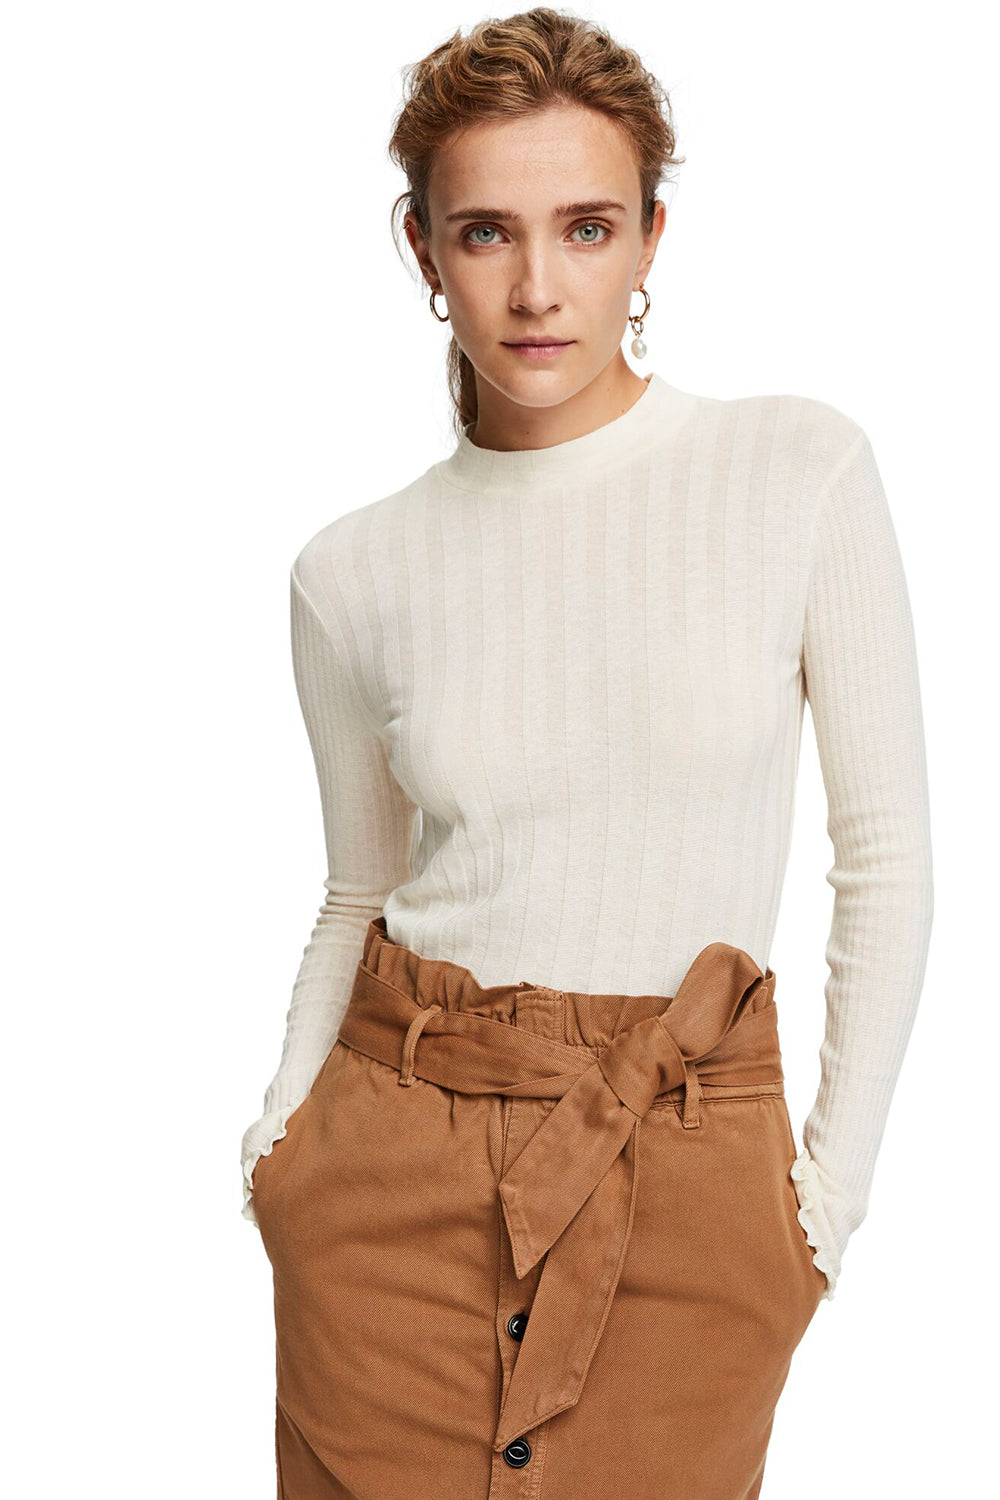 Maison Scotch / Long Sleeve Ribbed Turtleneck